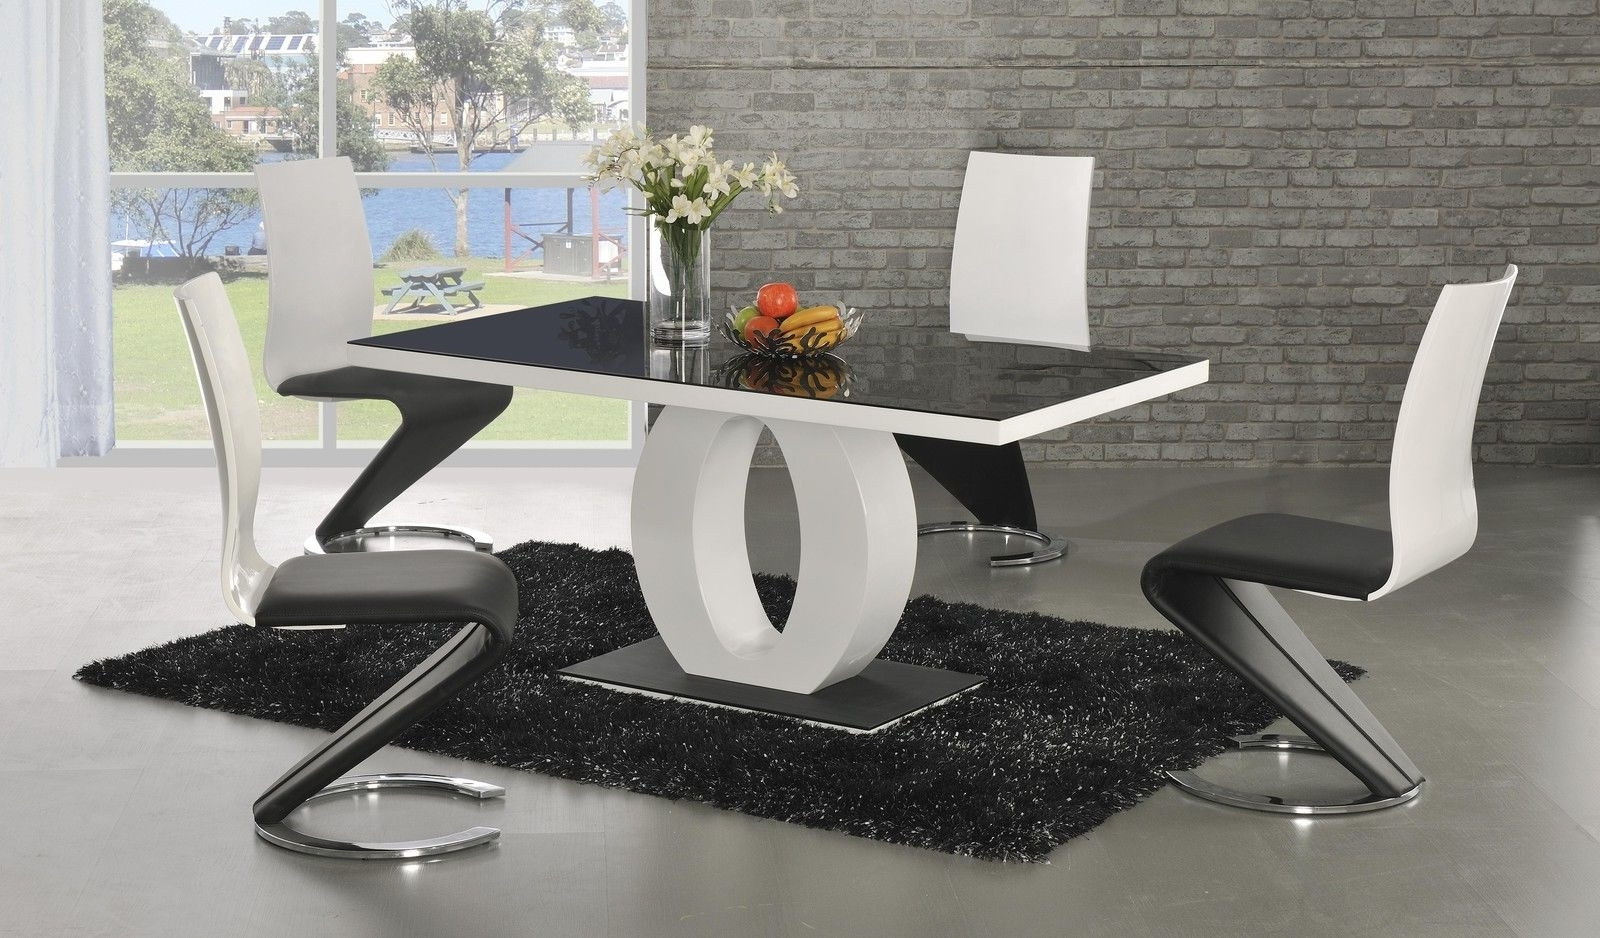 Ga Angel Black Glass White Gloss 160 Cm Designer Dining Set 4 6 Z With Most Current Glass And White Gloss Dining Tables (Gallery 13 of 25)